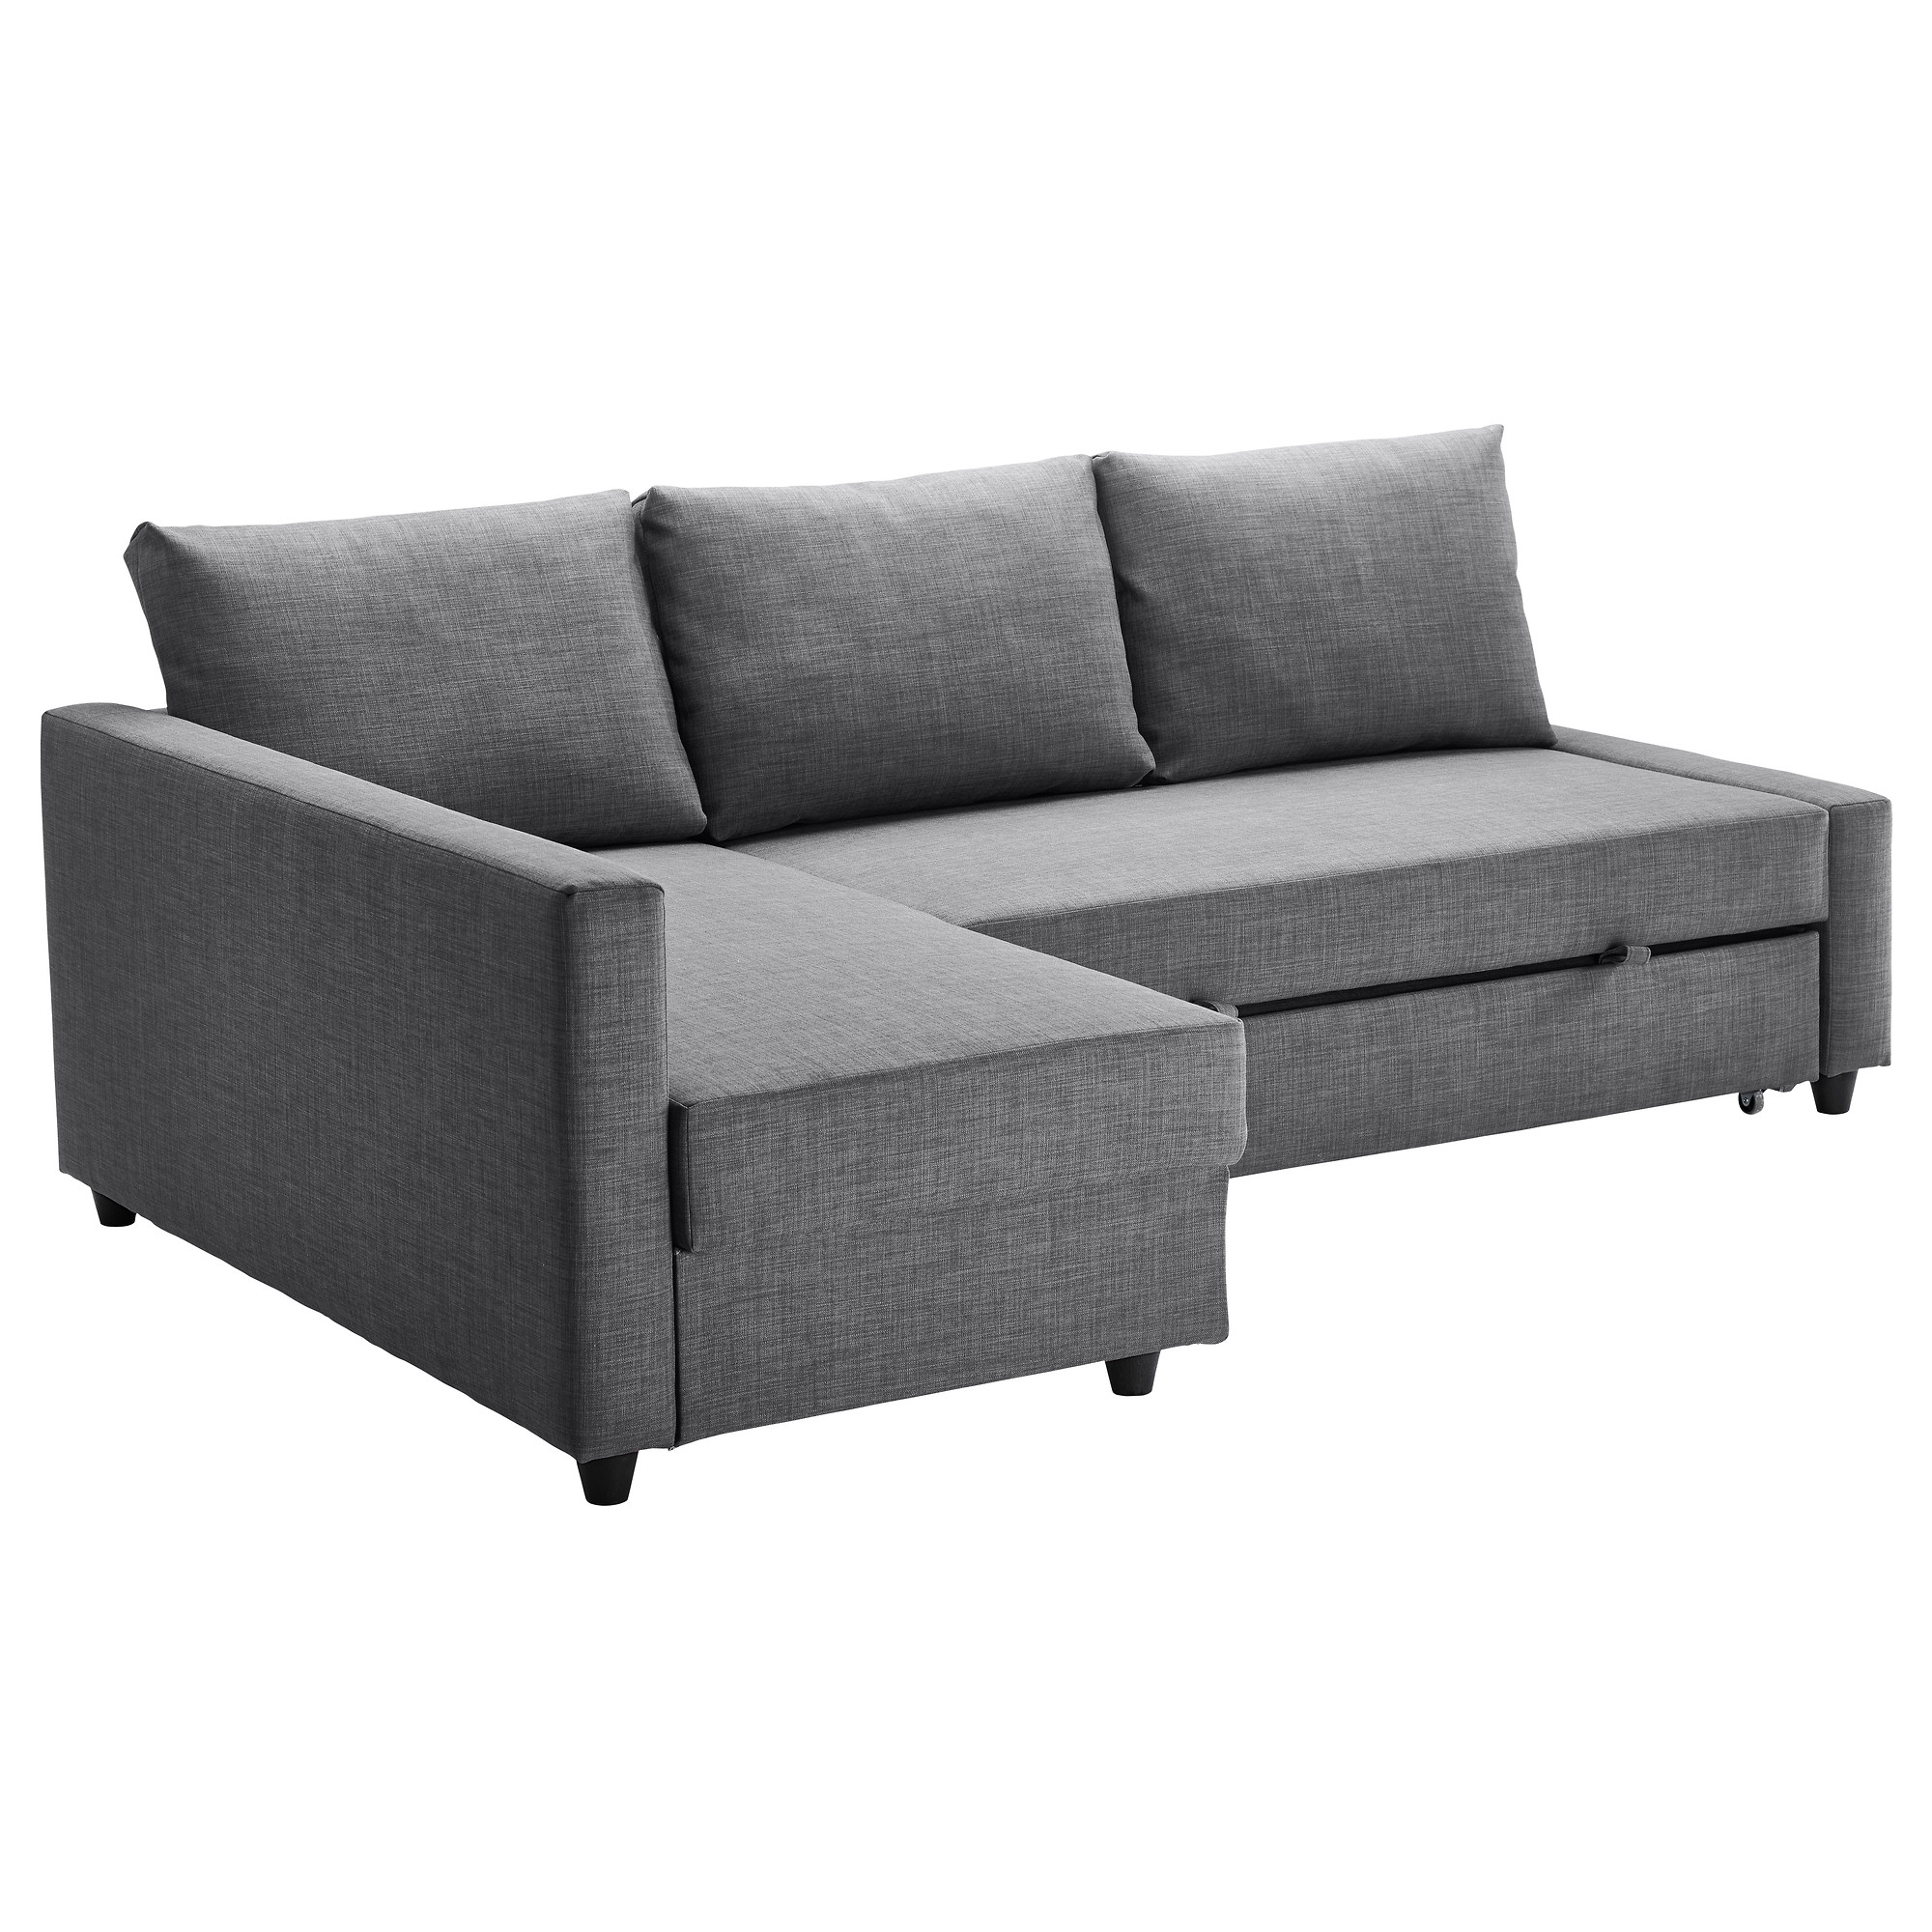 Most Up To Date Ikea Small Sofas Inside Friheten Corner Sofa Bed With Storage Skiftebo Dark Grey – Ikea (View 9 of 15)